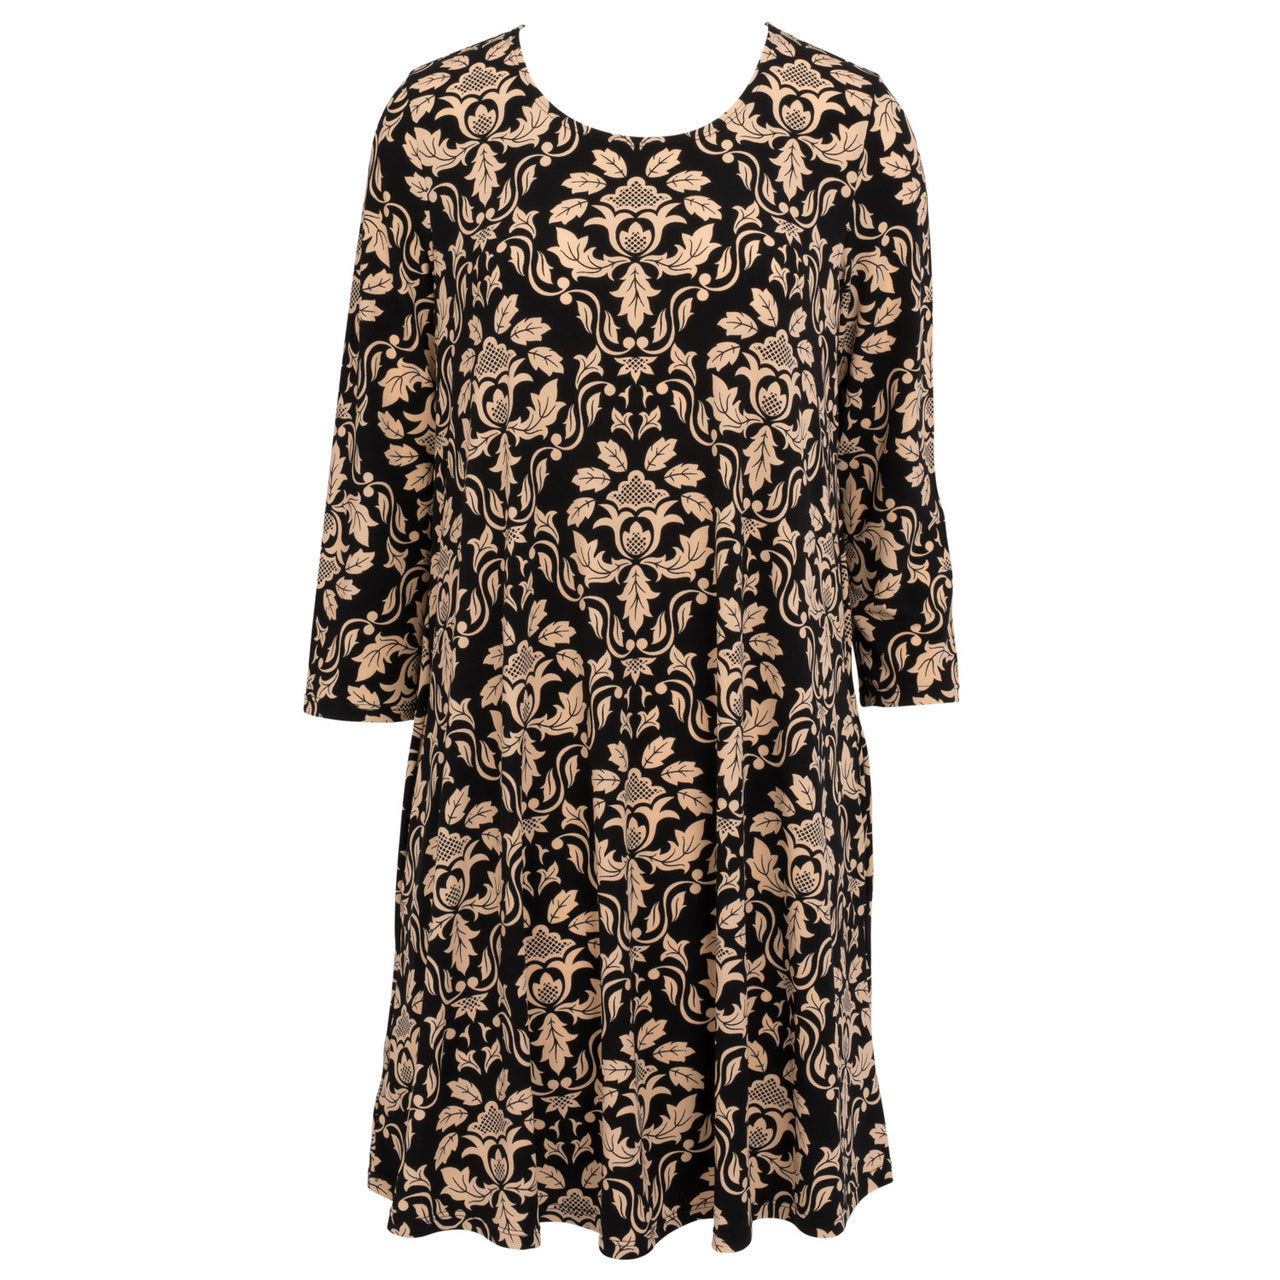 Mountain Mamas Essential Tunic Dress - Black & Tan Damask - Bendixen's Giftware